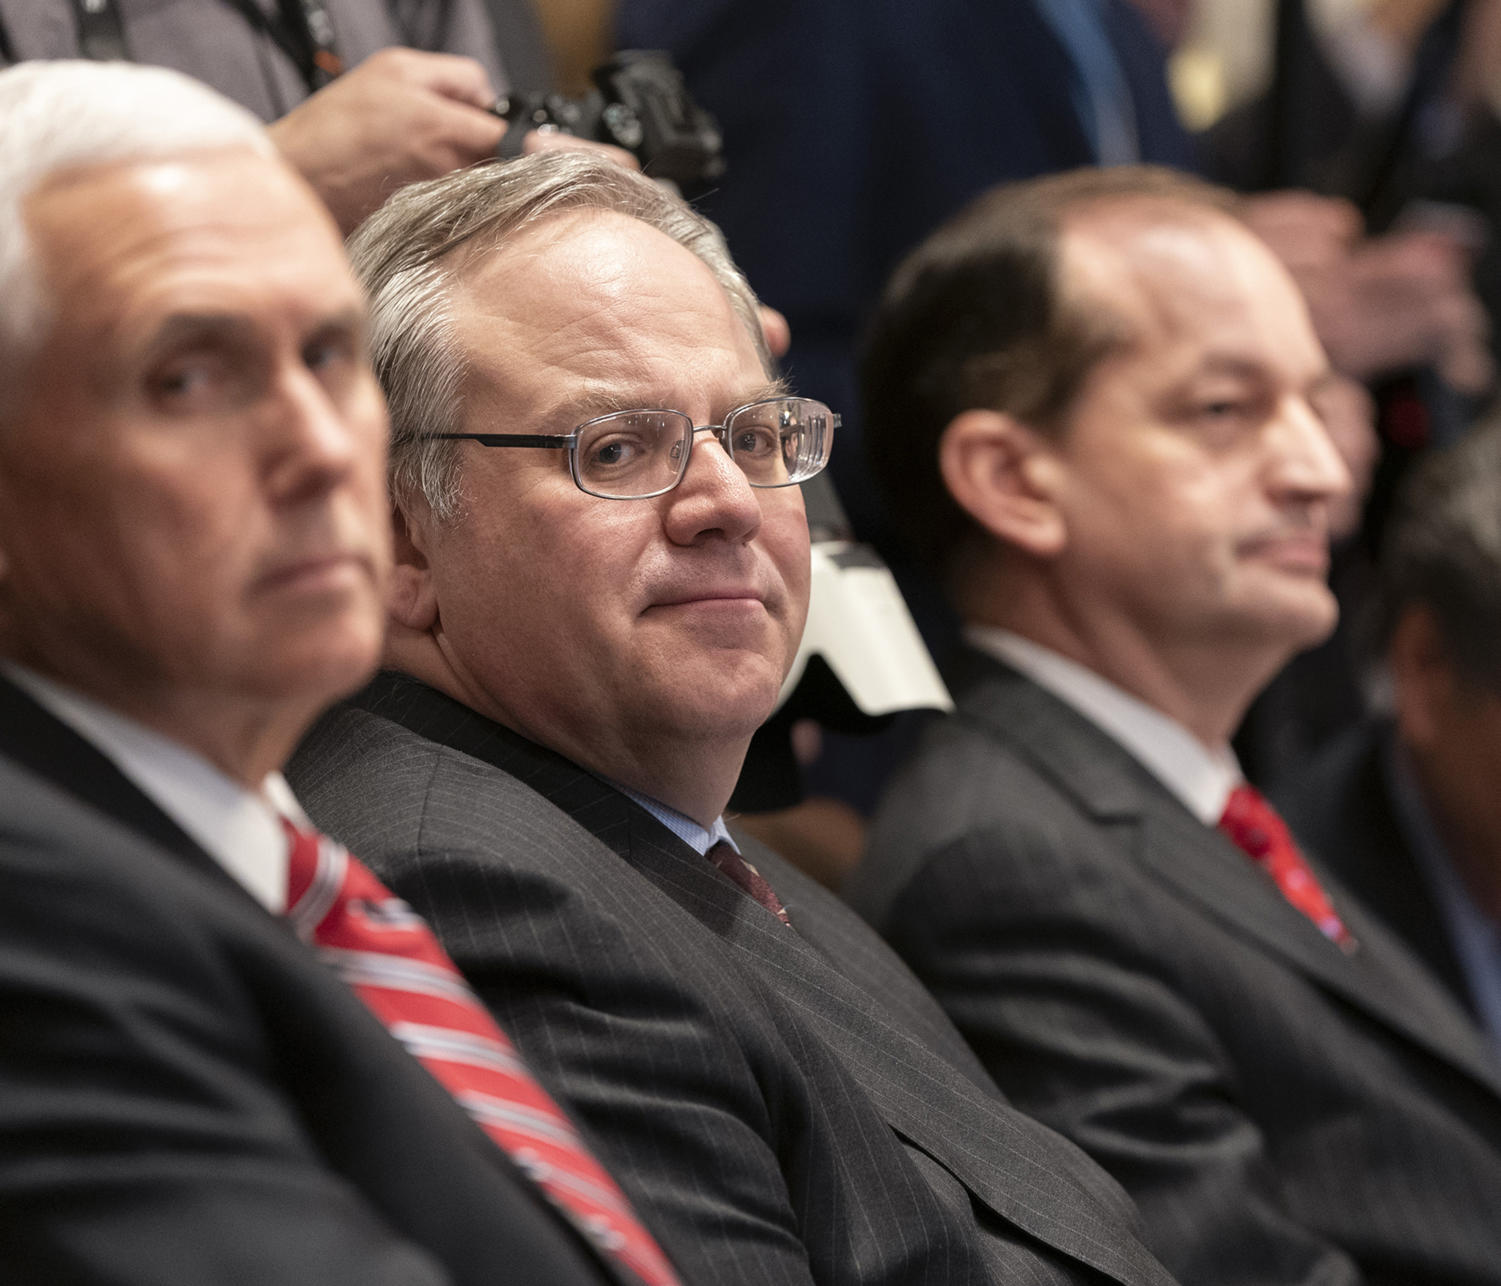 Acting Interior Secretary David Bernhardt attends a Cabinet meeting, February 12, 2019, at the White House in Washington, D.C.